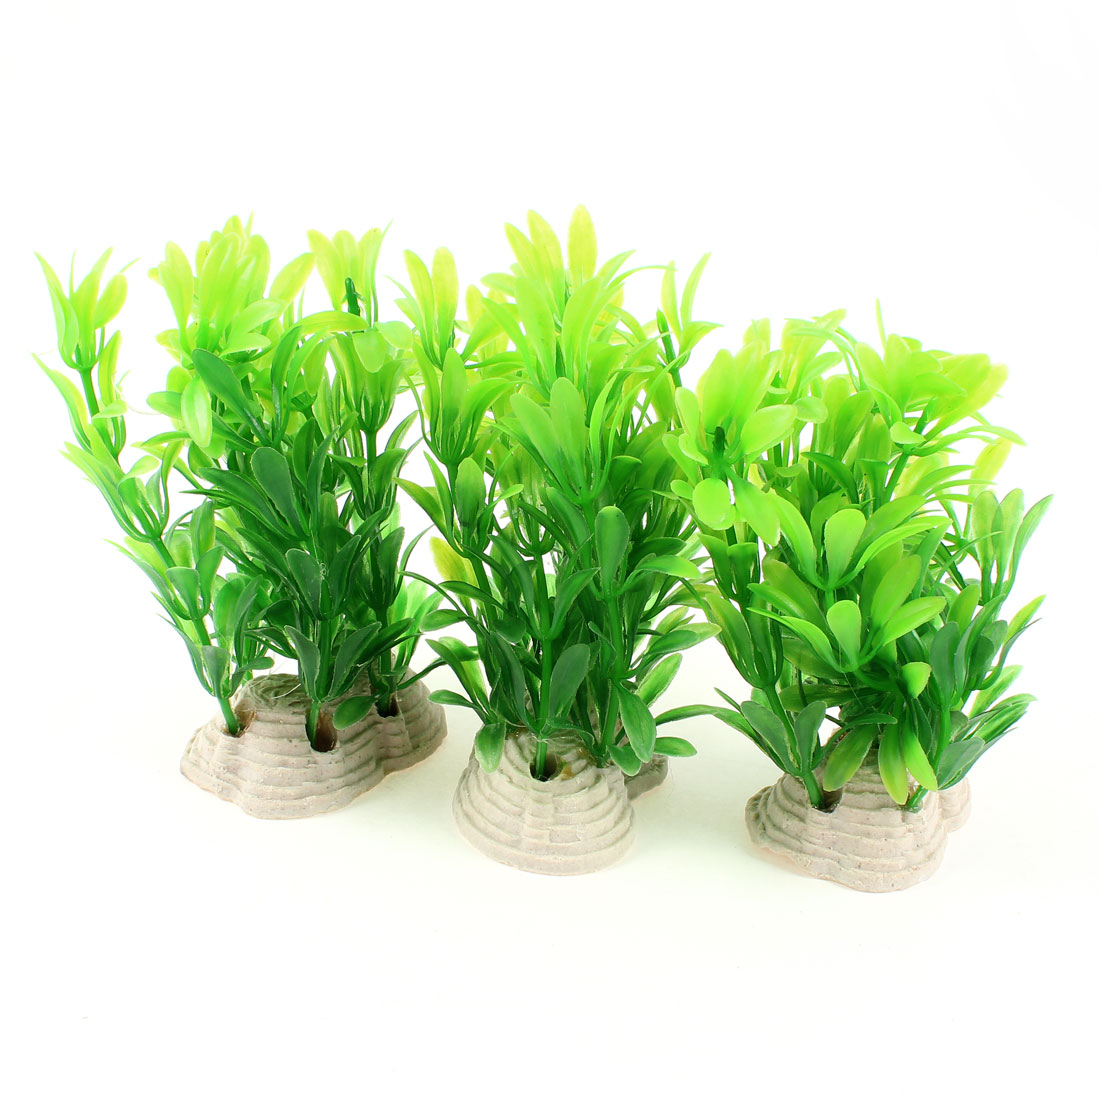 "3 Pcs 3.9"" Aquarium Landscaping Artificial Underwater Grass Plant Green"